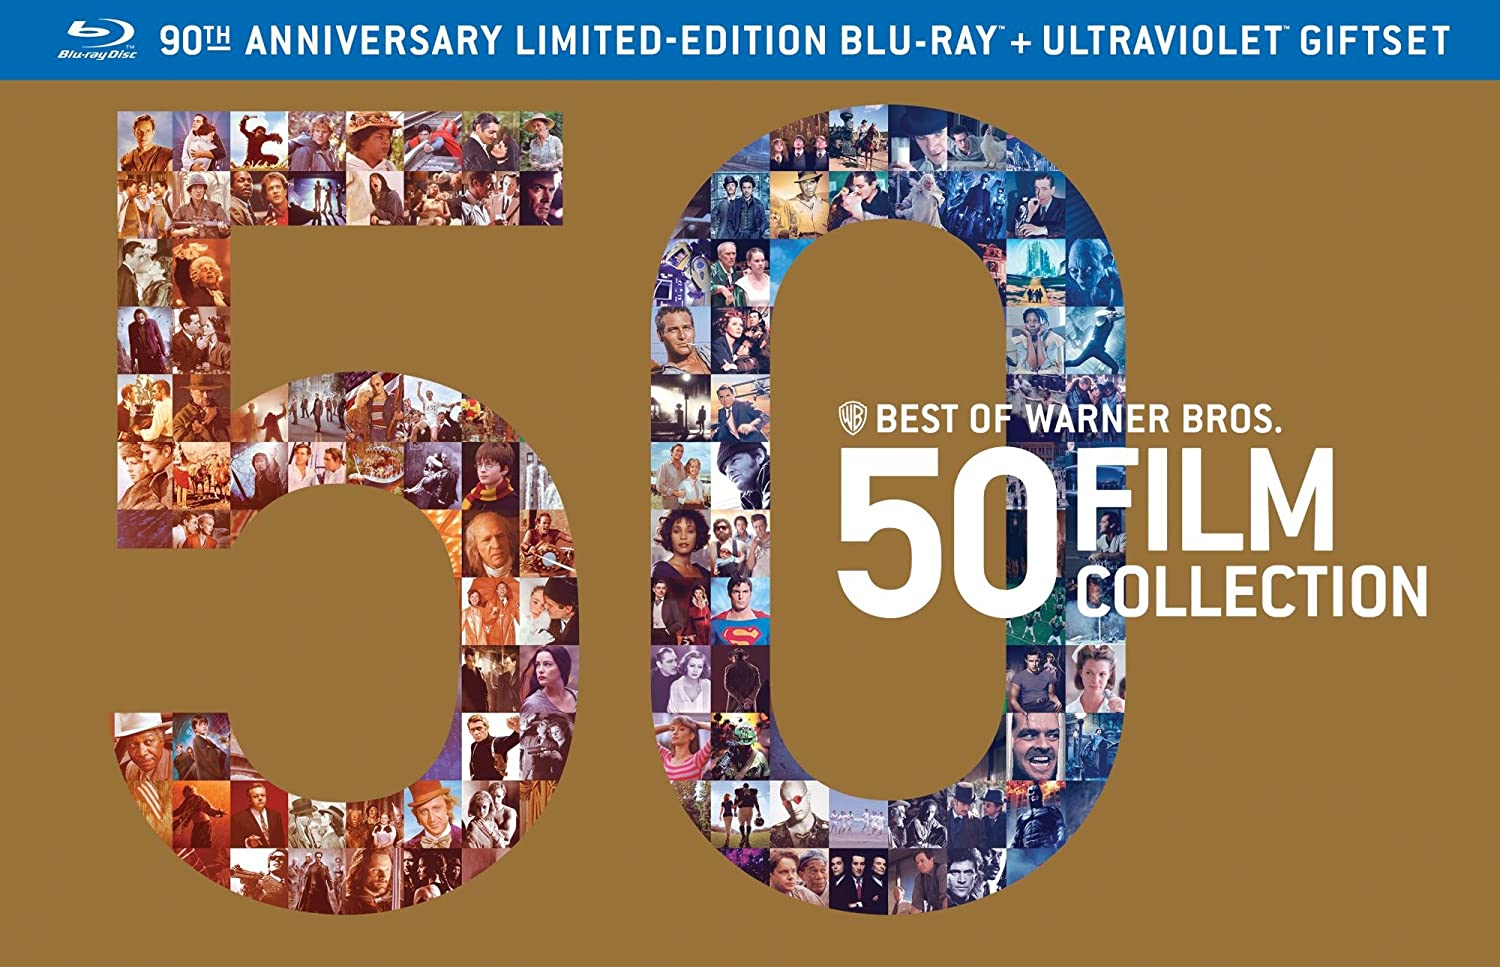 Best of Warner Bros 50 Film Collection (+UltraViolet Digital Copy) [Blu-ray] $184.99